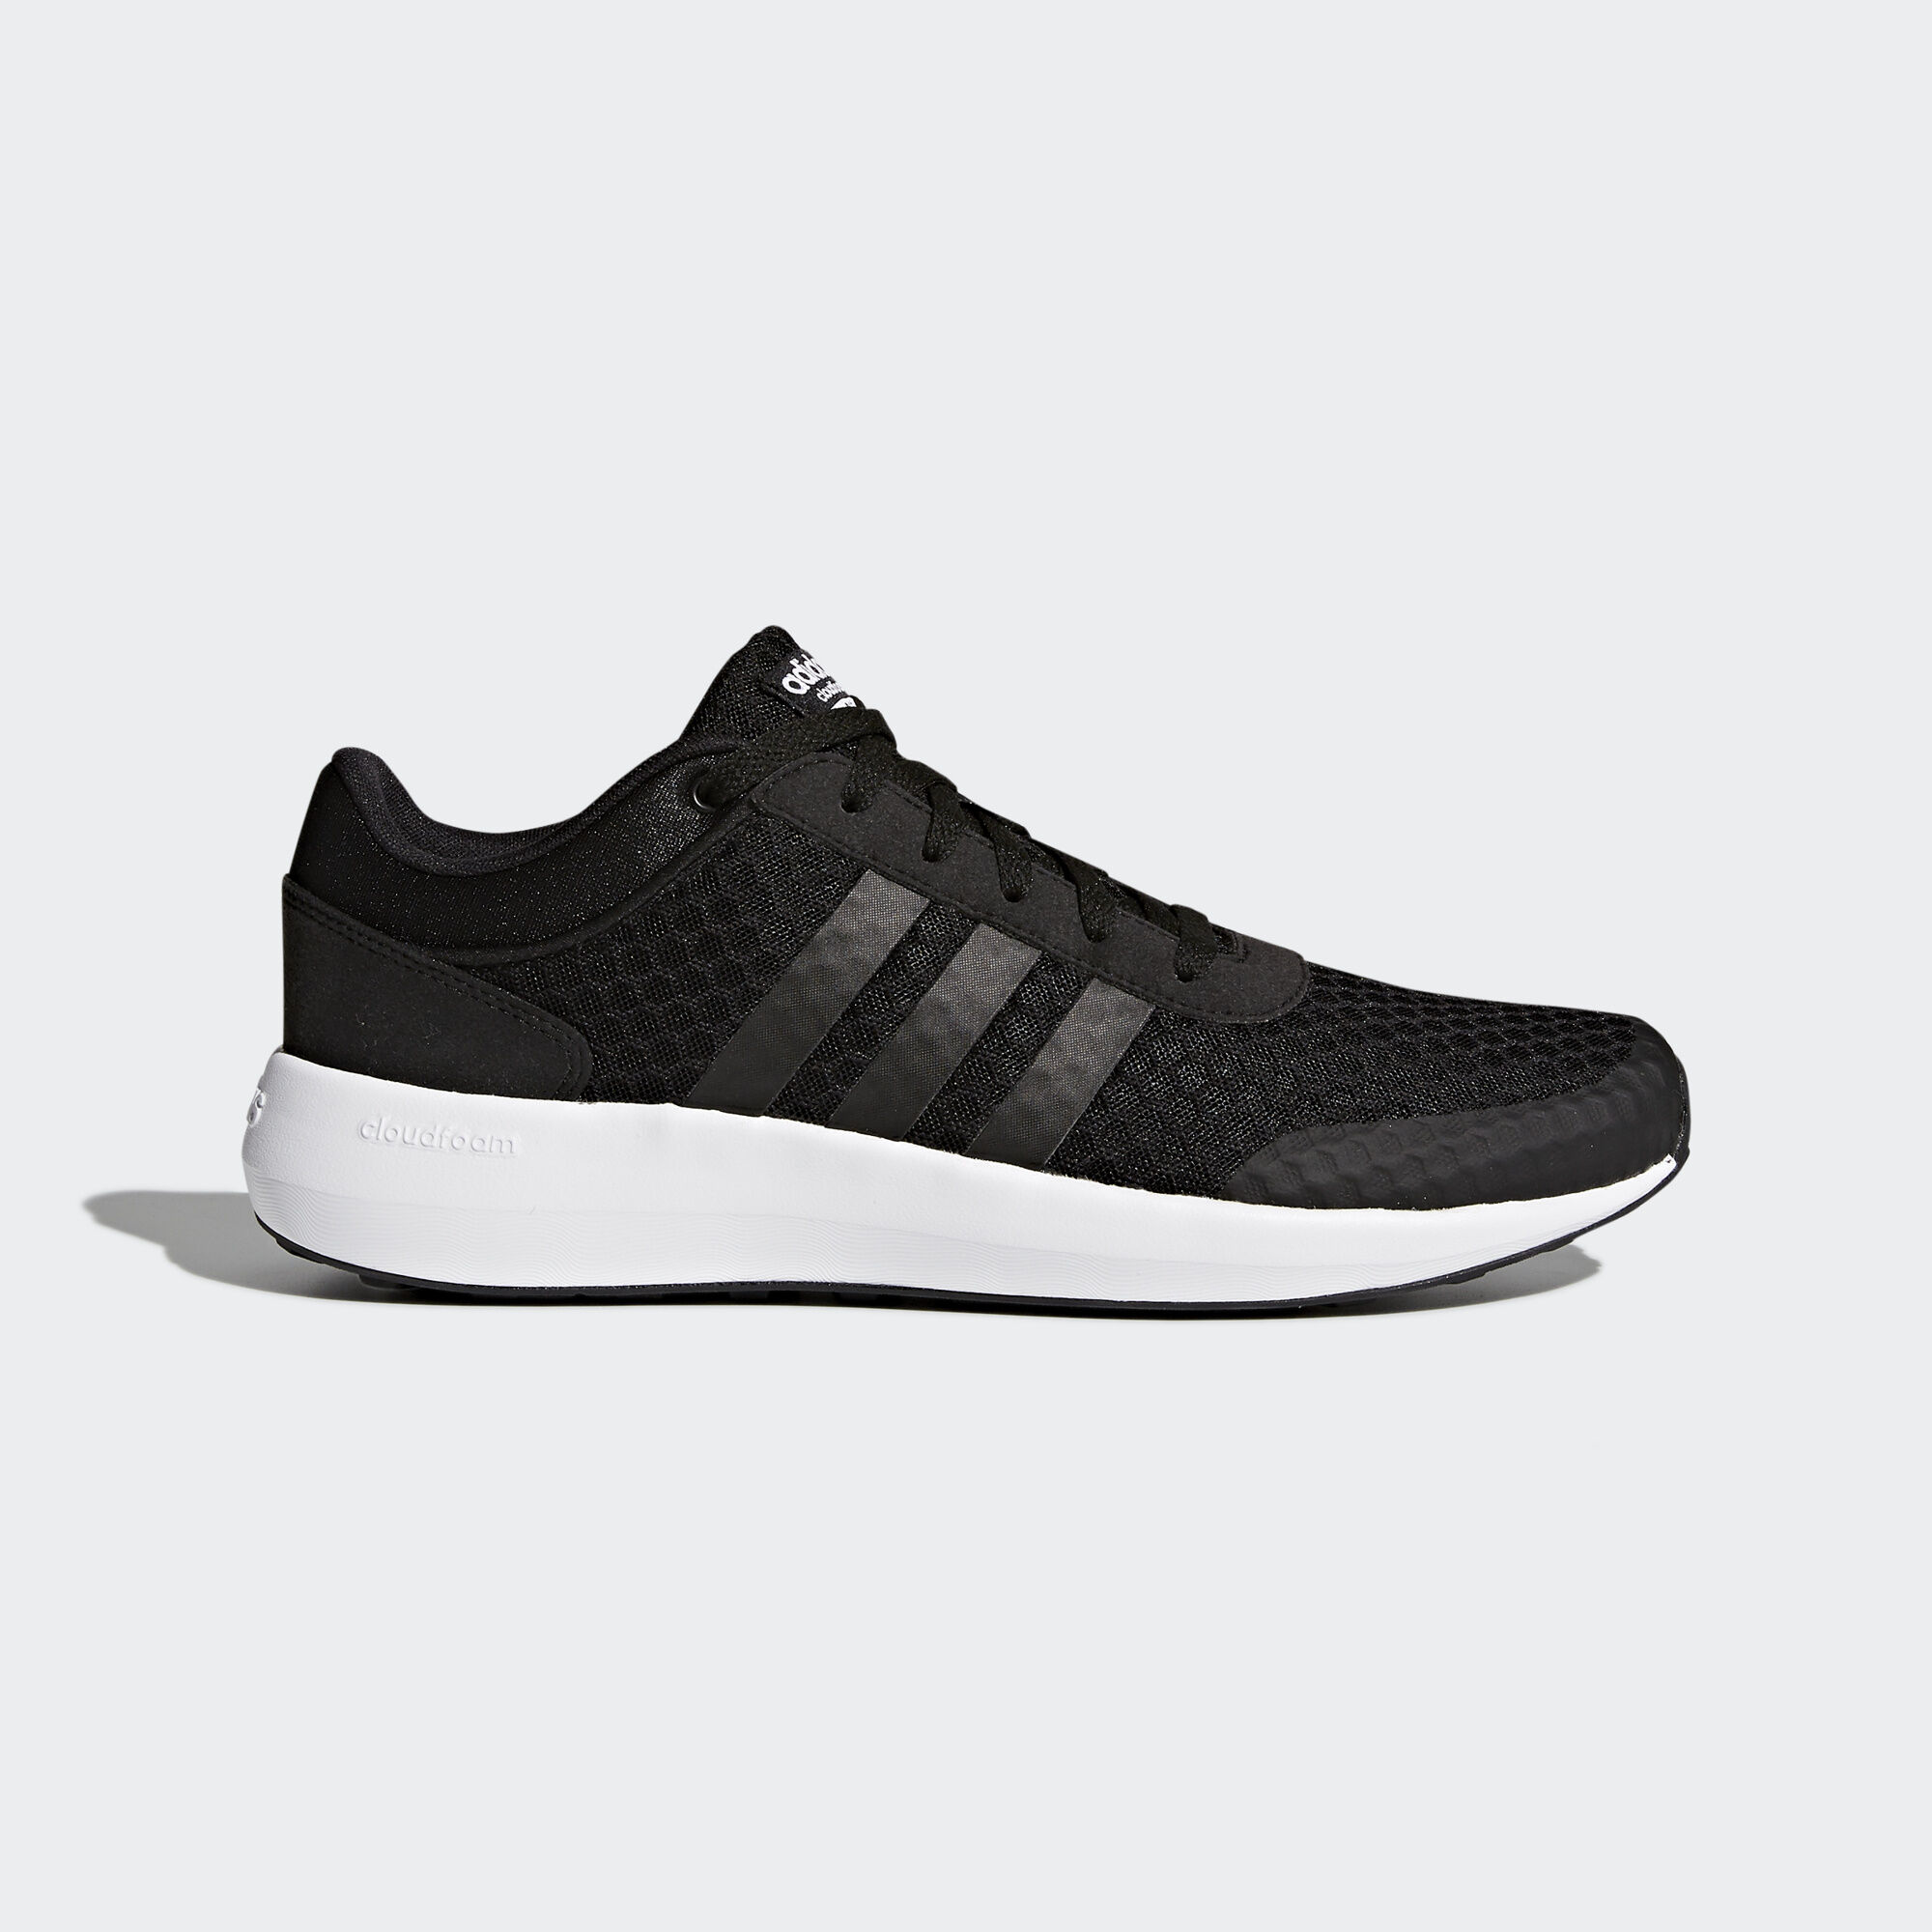 Adidas Neo Cloudfoam Ultra Footbed